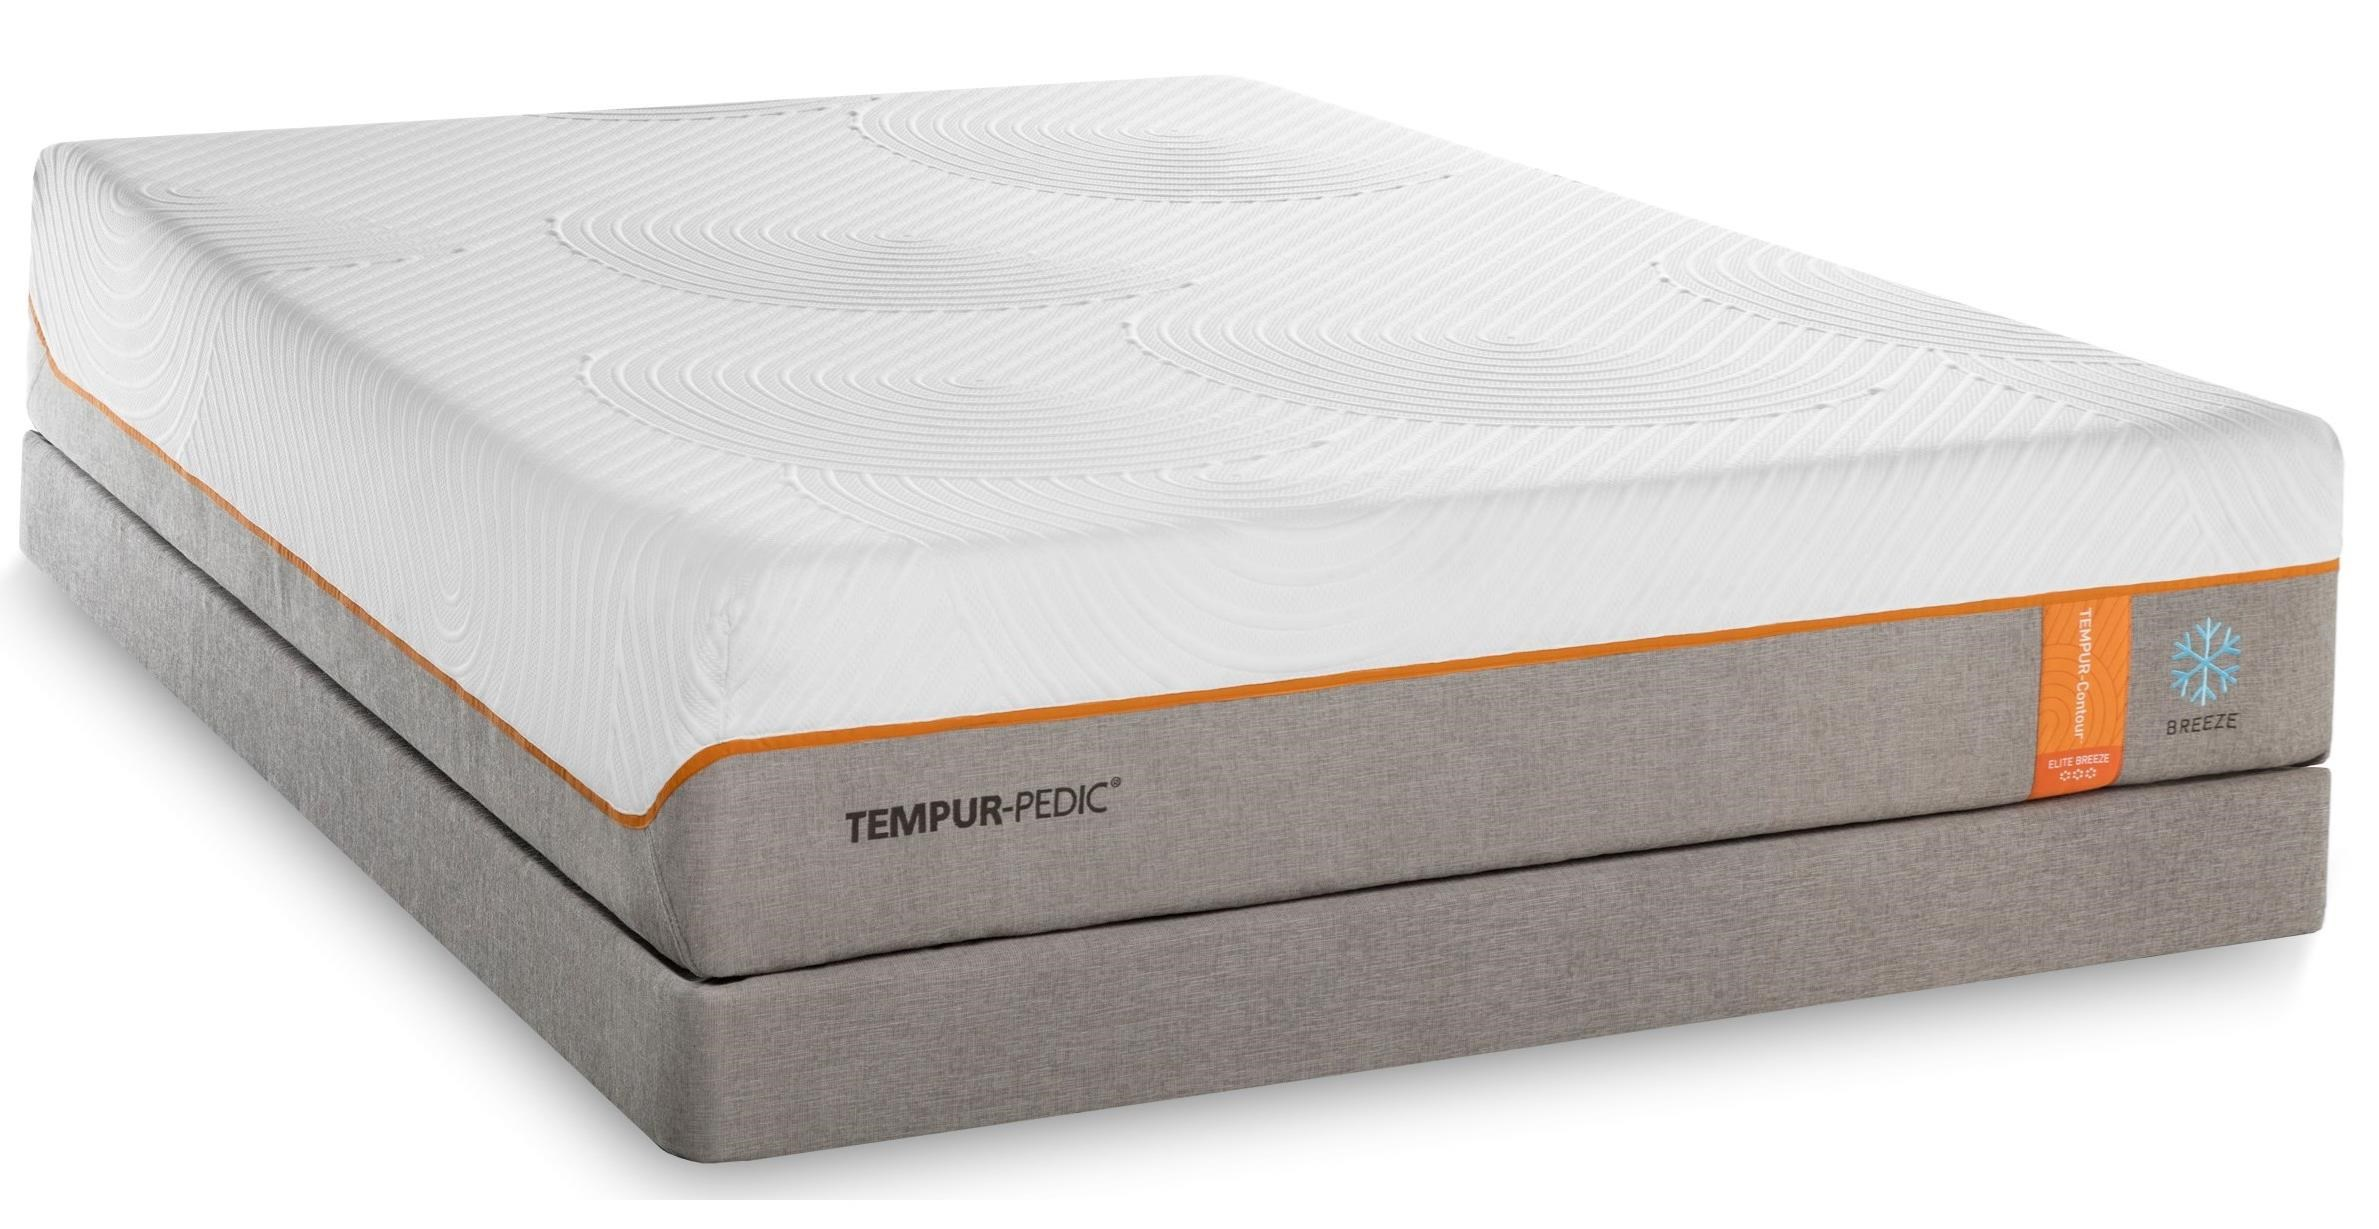 Tempur-Pedic® TEMPUR-Contour Elite Breeze Cal King Medium-Firm Mattress Set - Item Number: 10290280+2x20510190